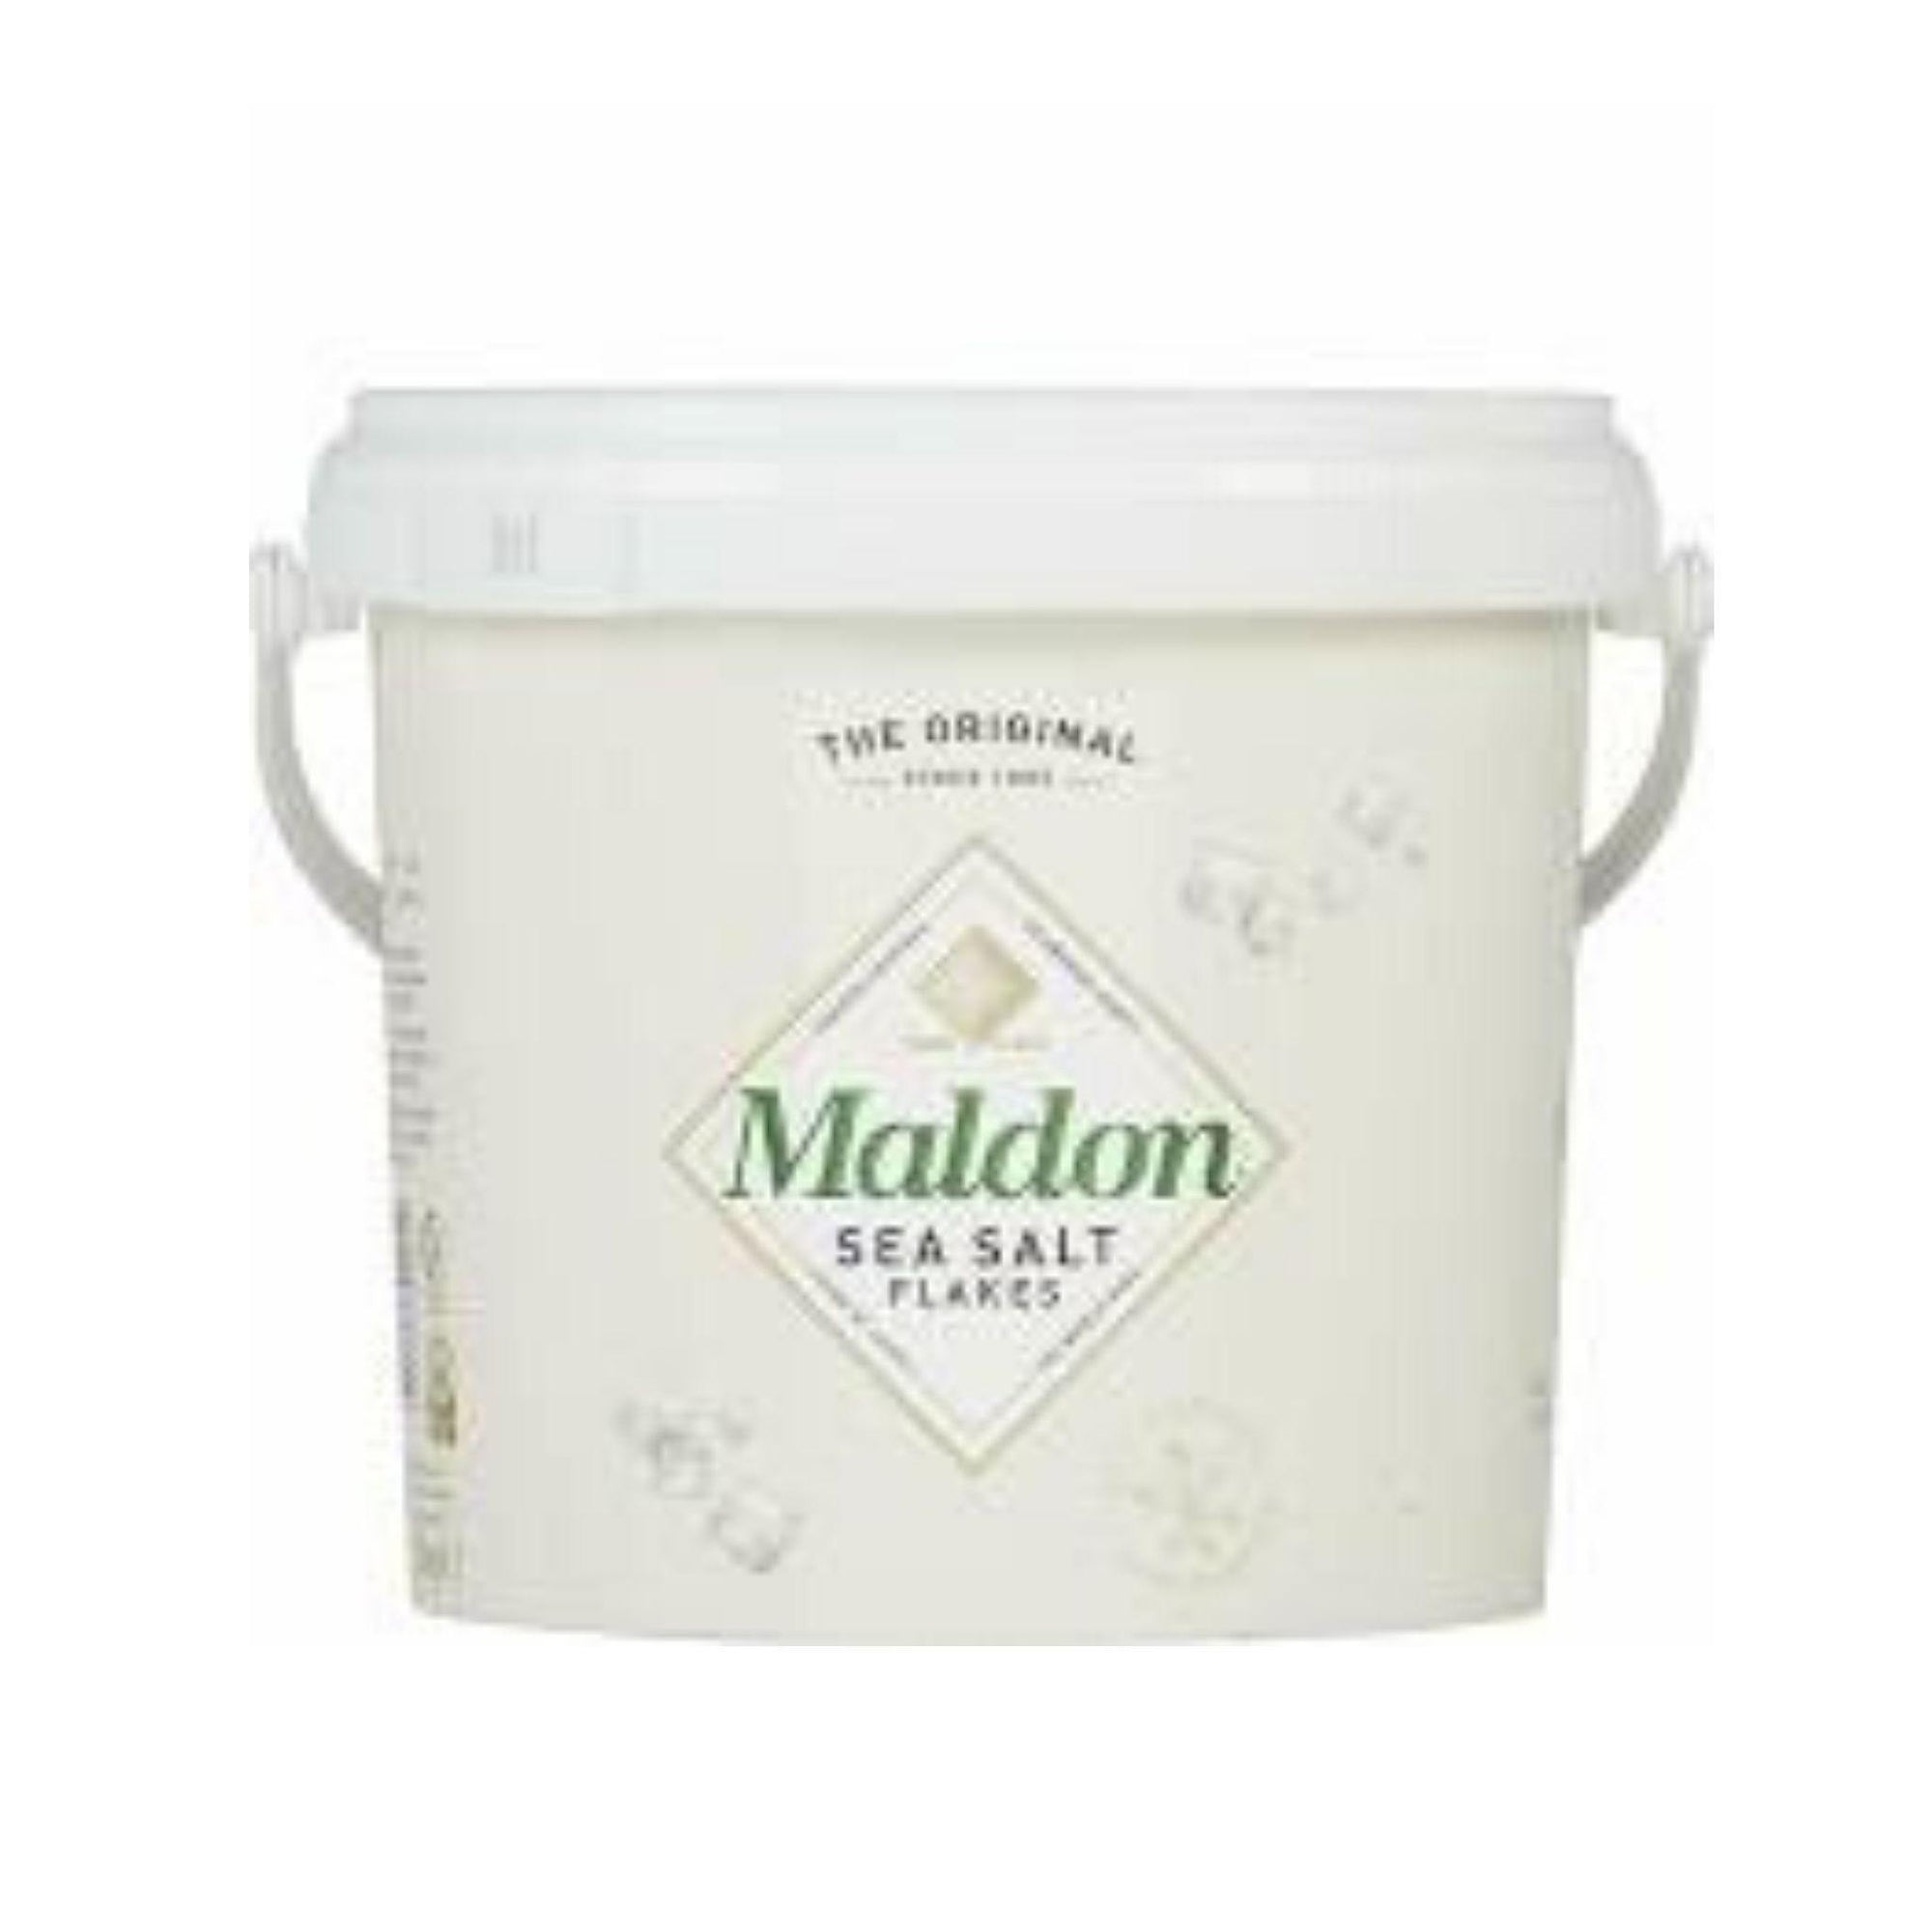 Maldon Sea Salt 1.4KG - Asian Harvest